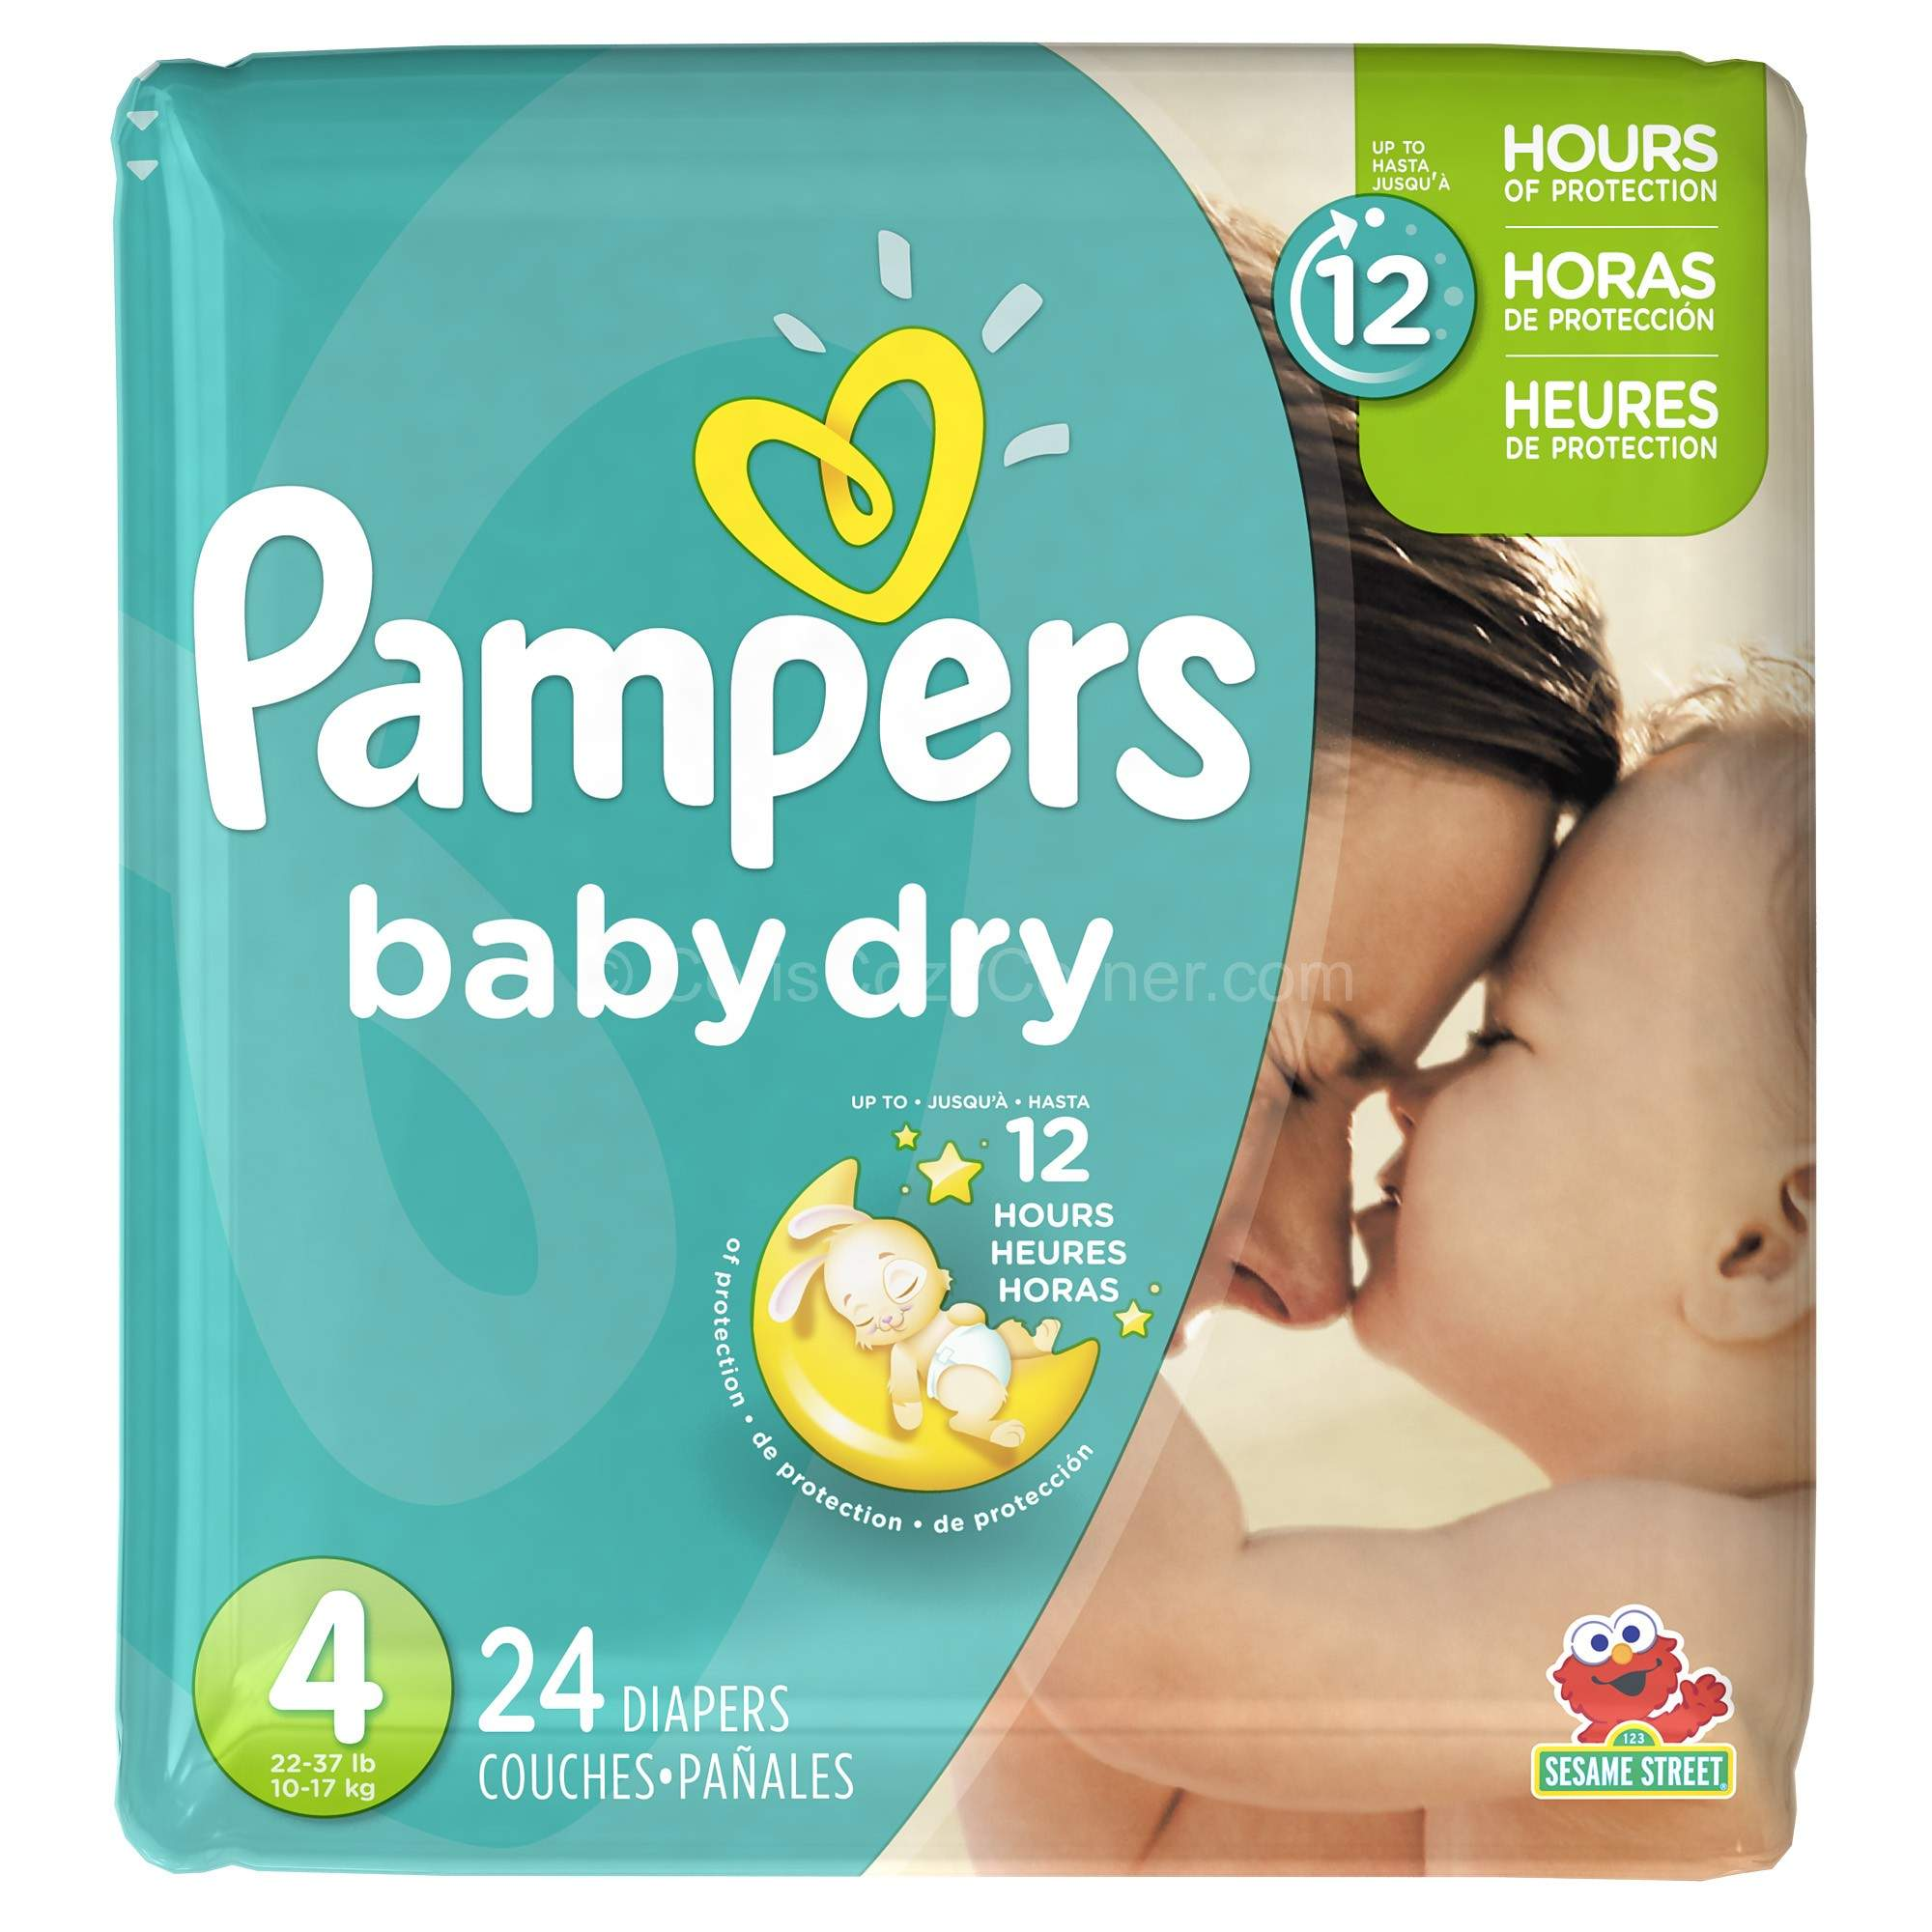 Newborn Baby Diapers Huggies Pampers 12 Hours Dry Economy Pack Count Size 1. Pampers Swaddlers - $ Pampers Swaddlers Sensitive Diapers Choose Your Size 1,2,3,4 Up To 12 Hours. Pampers Swaddlers - $ Pampers Swaddlers Sensitive Diapers Choose Your Size 1,2,3,4 Up To 12 Hours.